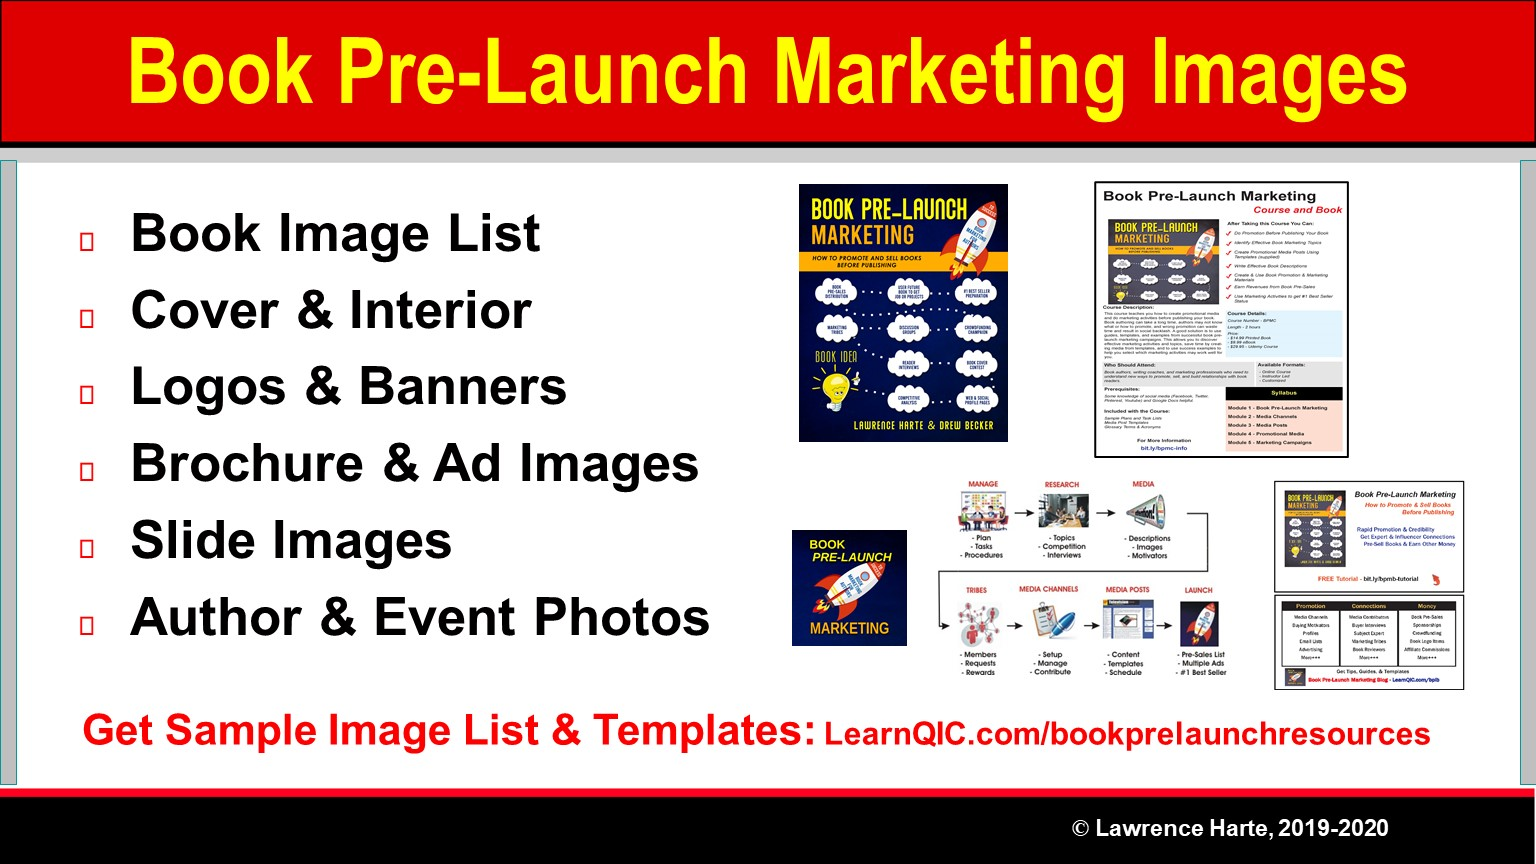 Key Book Pre-Launch Marketing Images